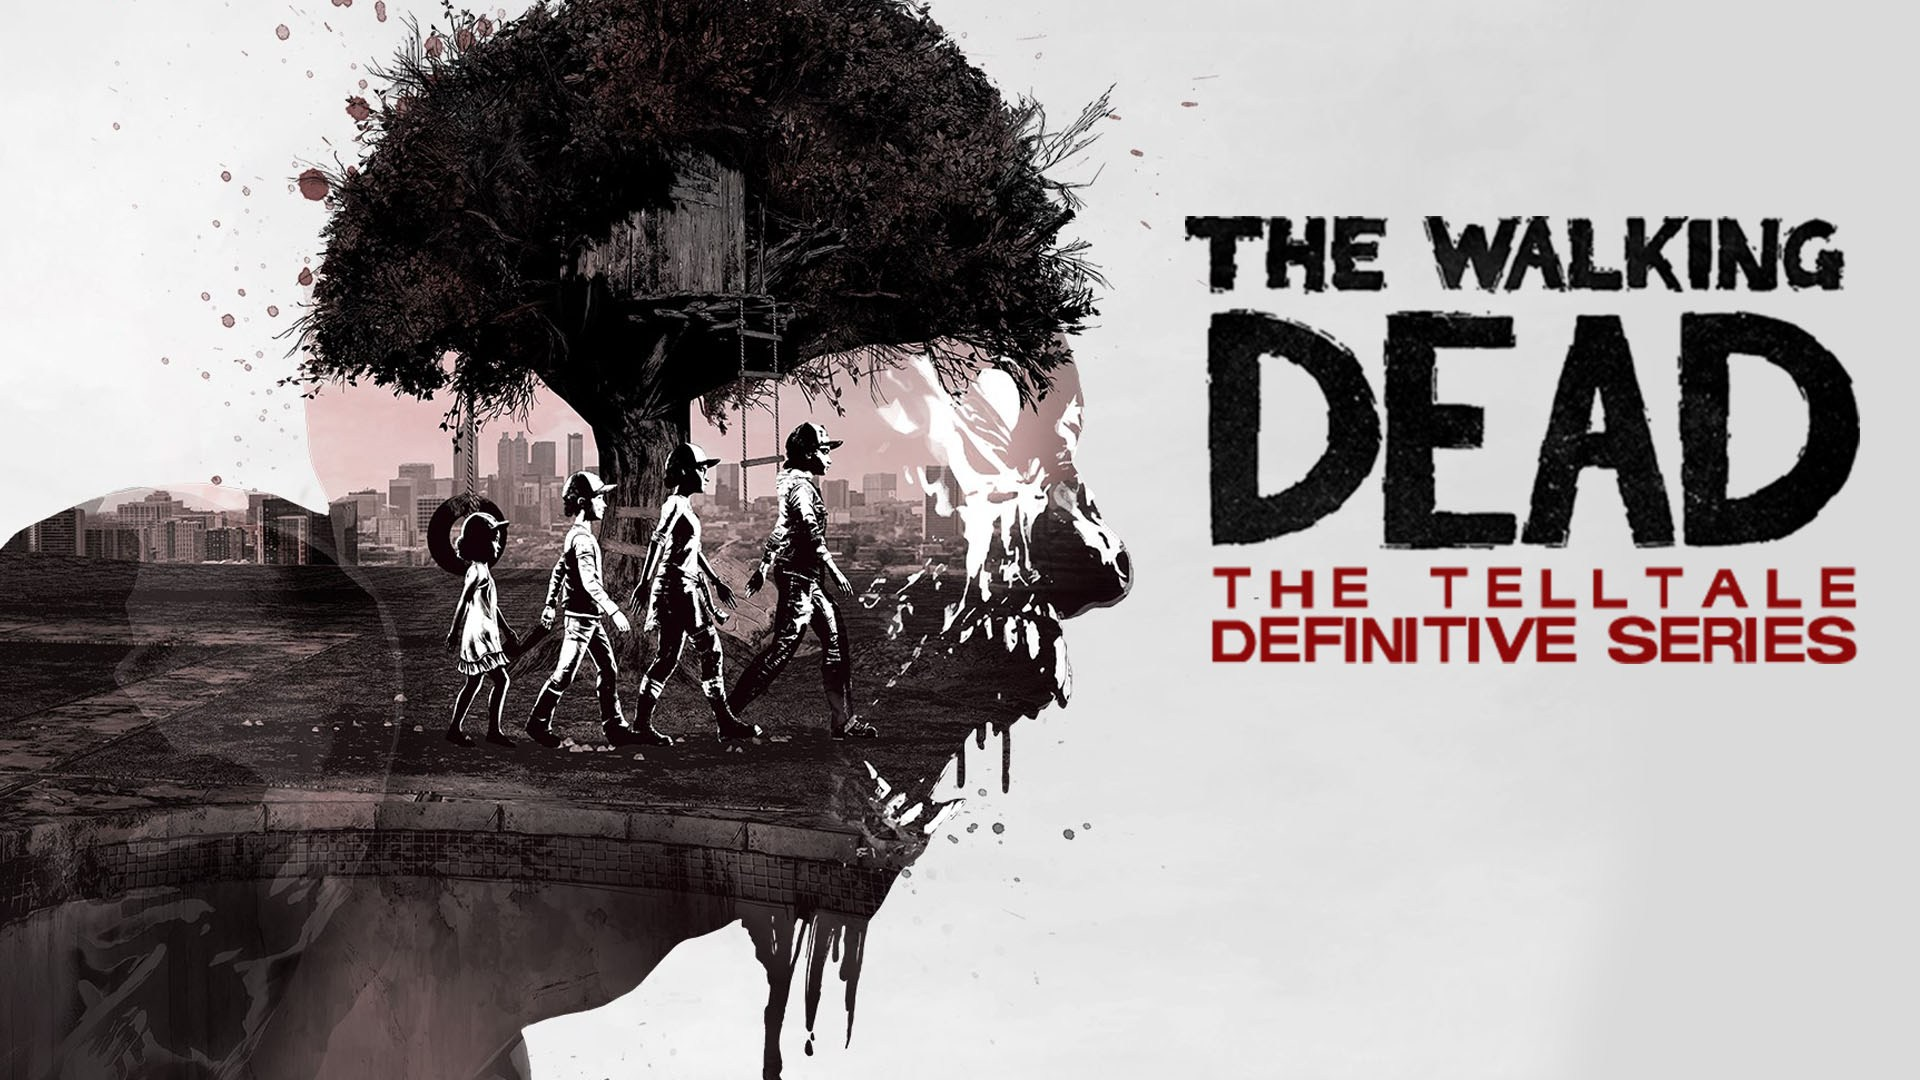 The Walking Dead: The Telltale Definitive Series %100 Türkçe Yama Çıktı!